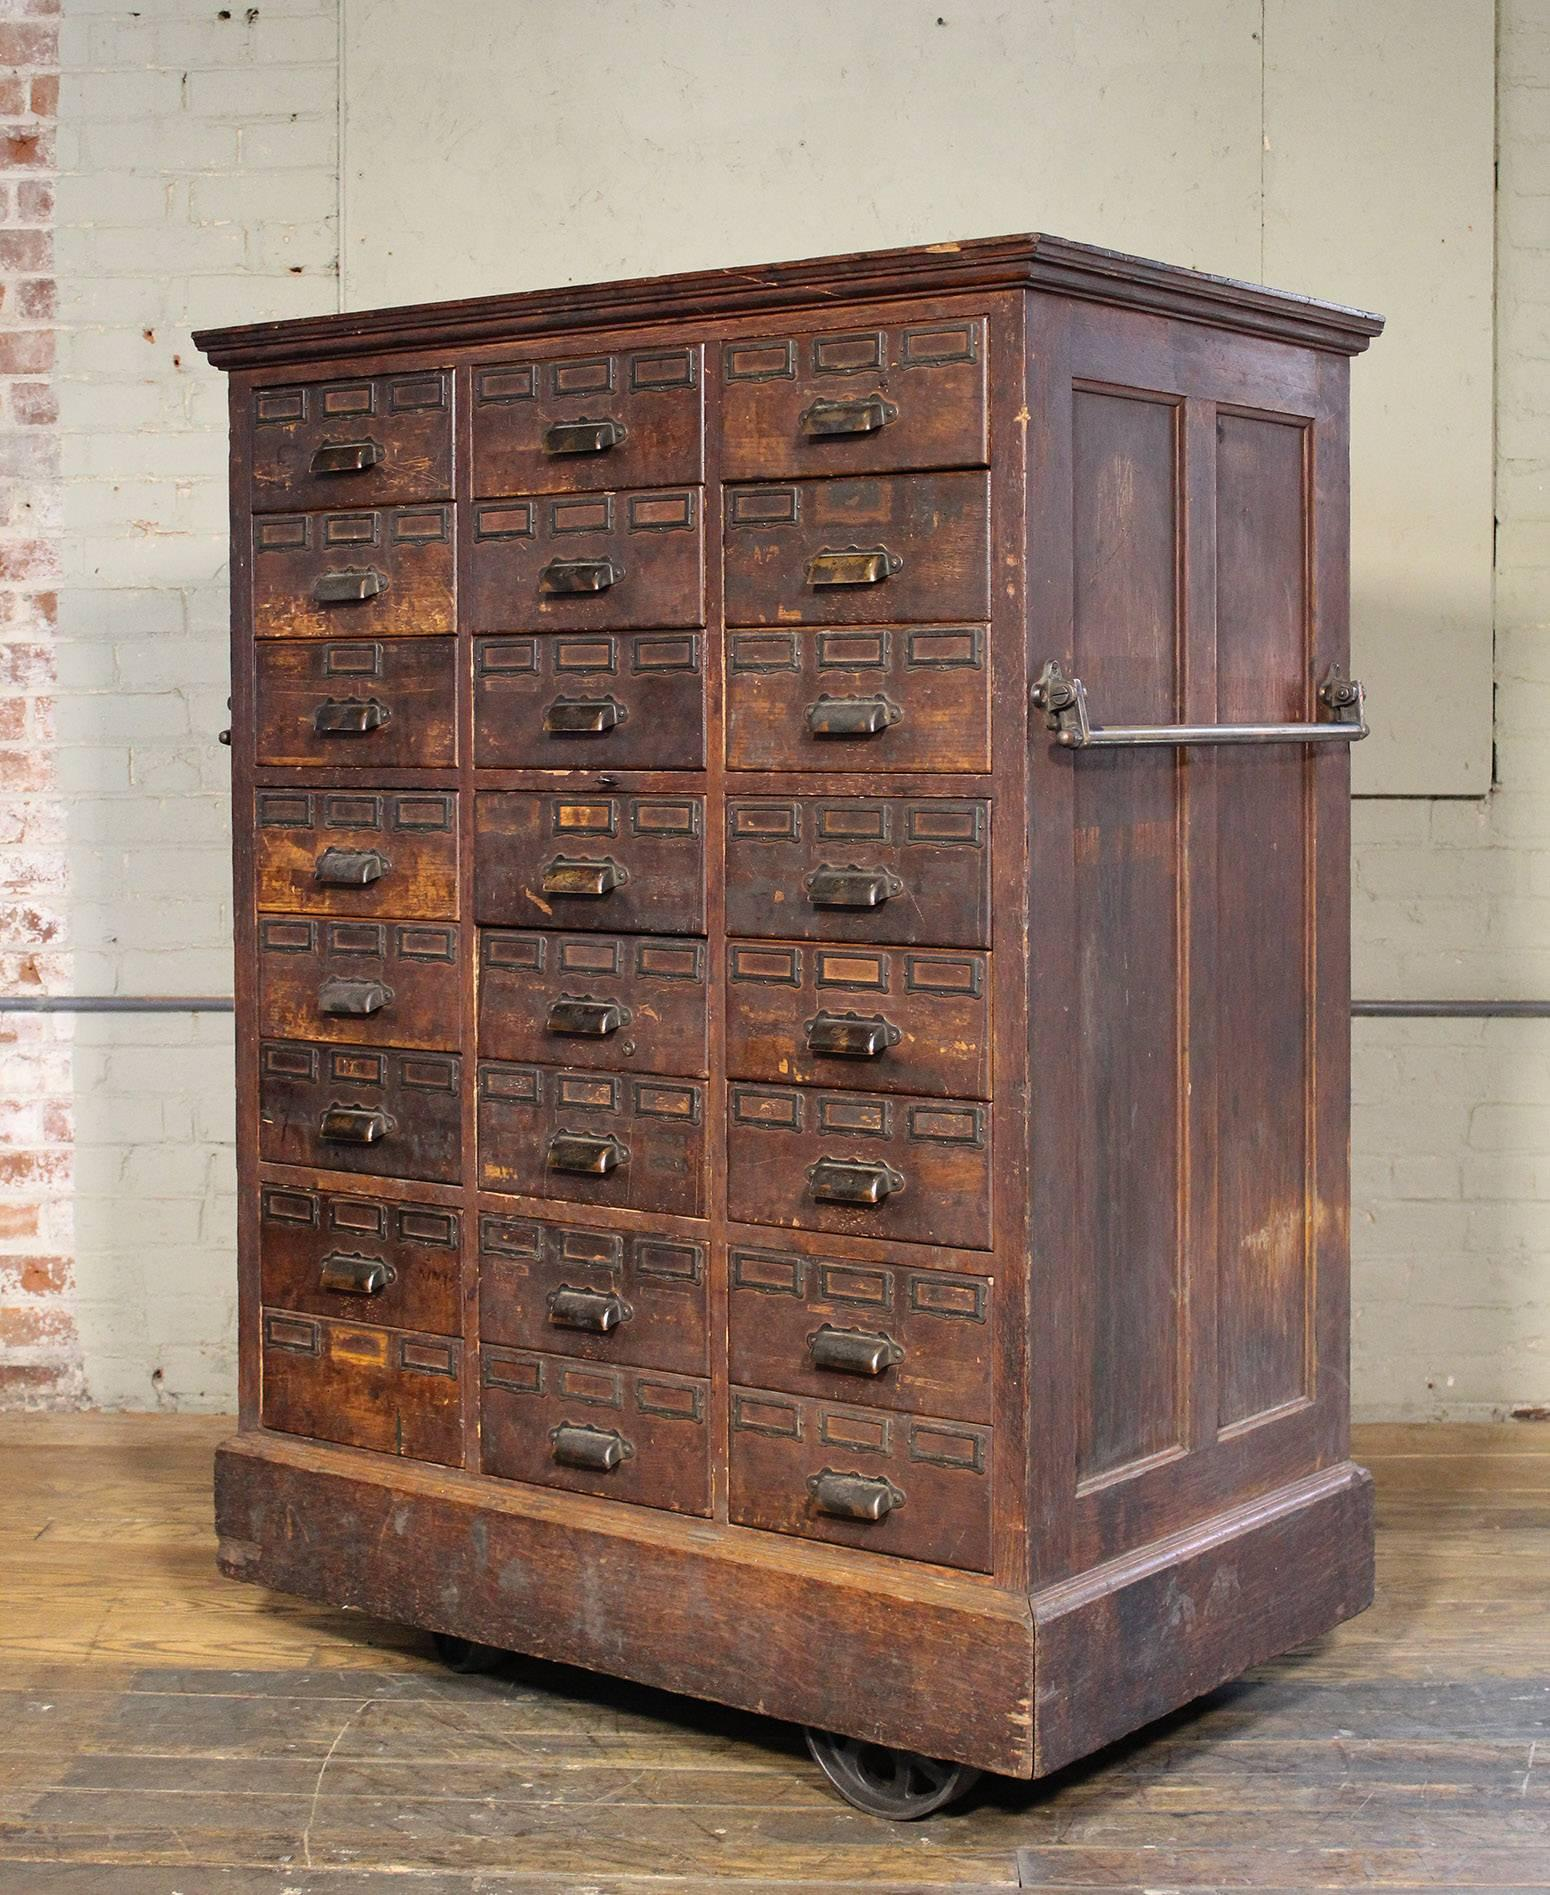 Charmant Rolling Distressed Apothecary Wood Storage Cabinet, Vintage Industrial With  Brass Hardware. Lower Six Drawers